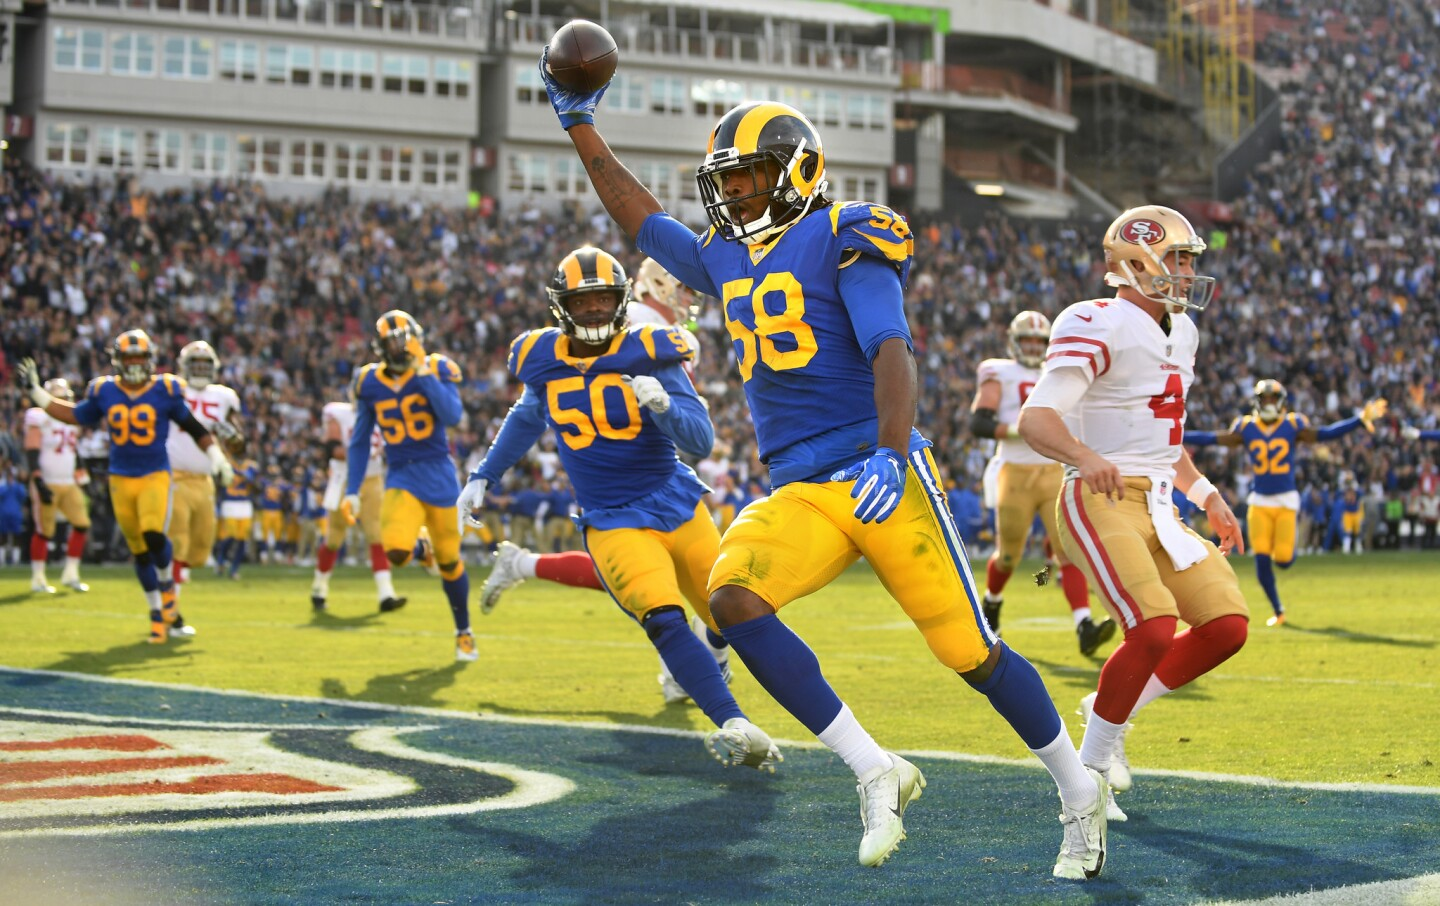 Rams linebacker Cory Littleton beats 49ers backup quarterback Nick Mullens (4) to the end zone while returning an interception for a touchdown last season.